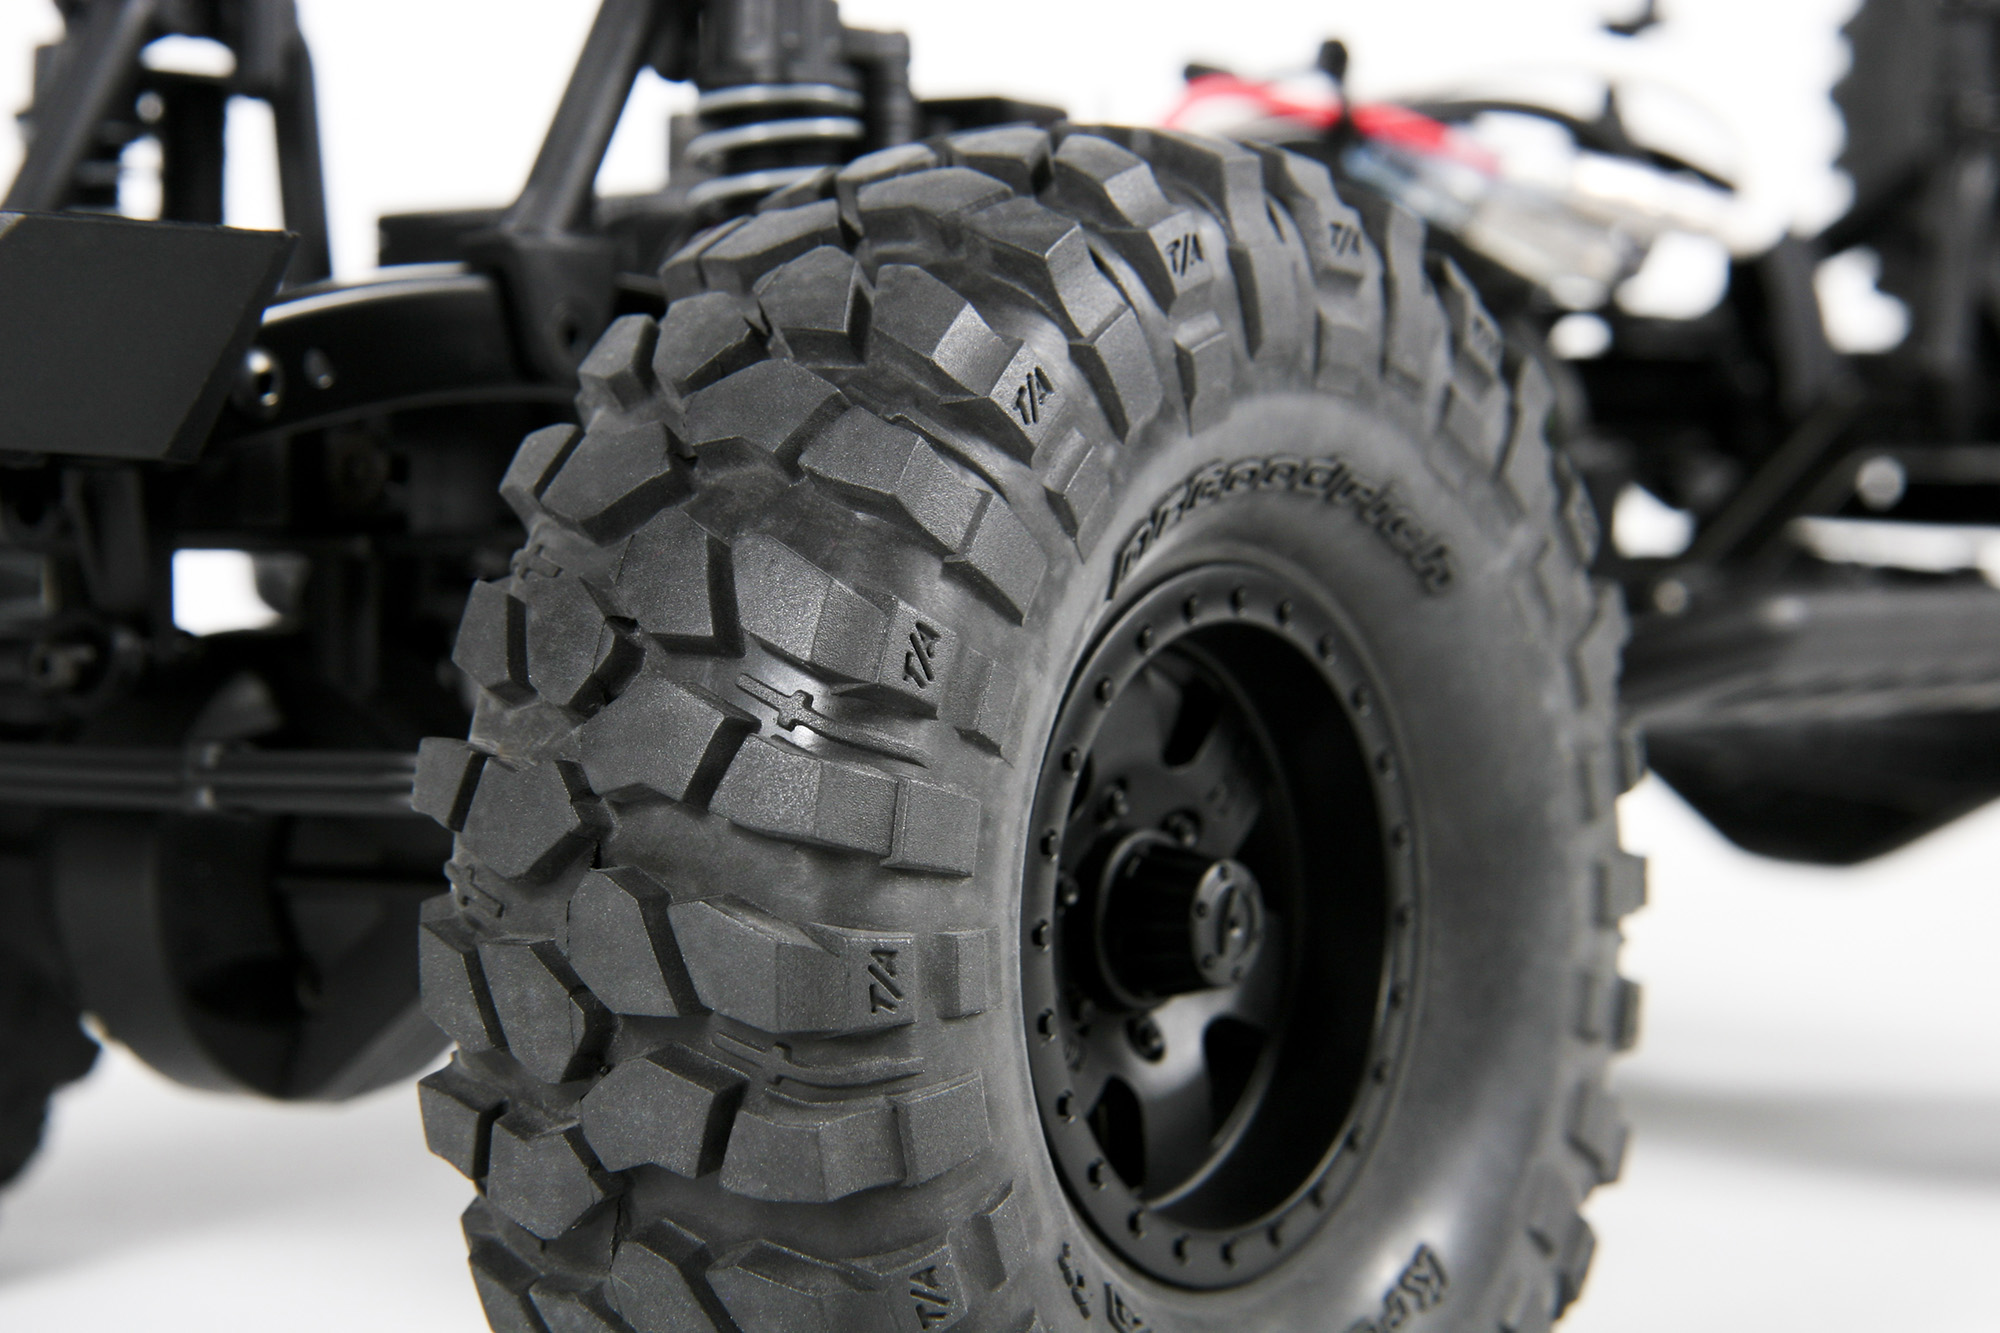 Attachment Browser Axial Scx10 2012 Jeep Wrangler